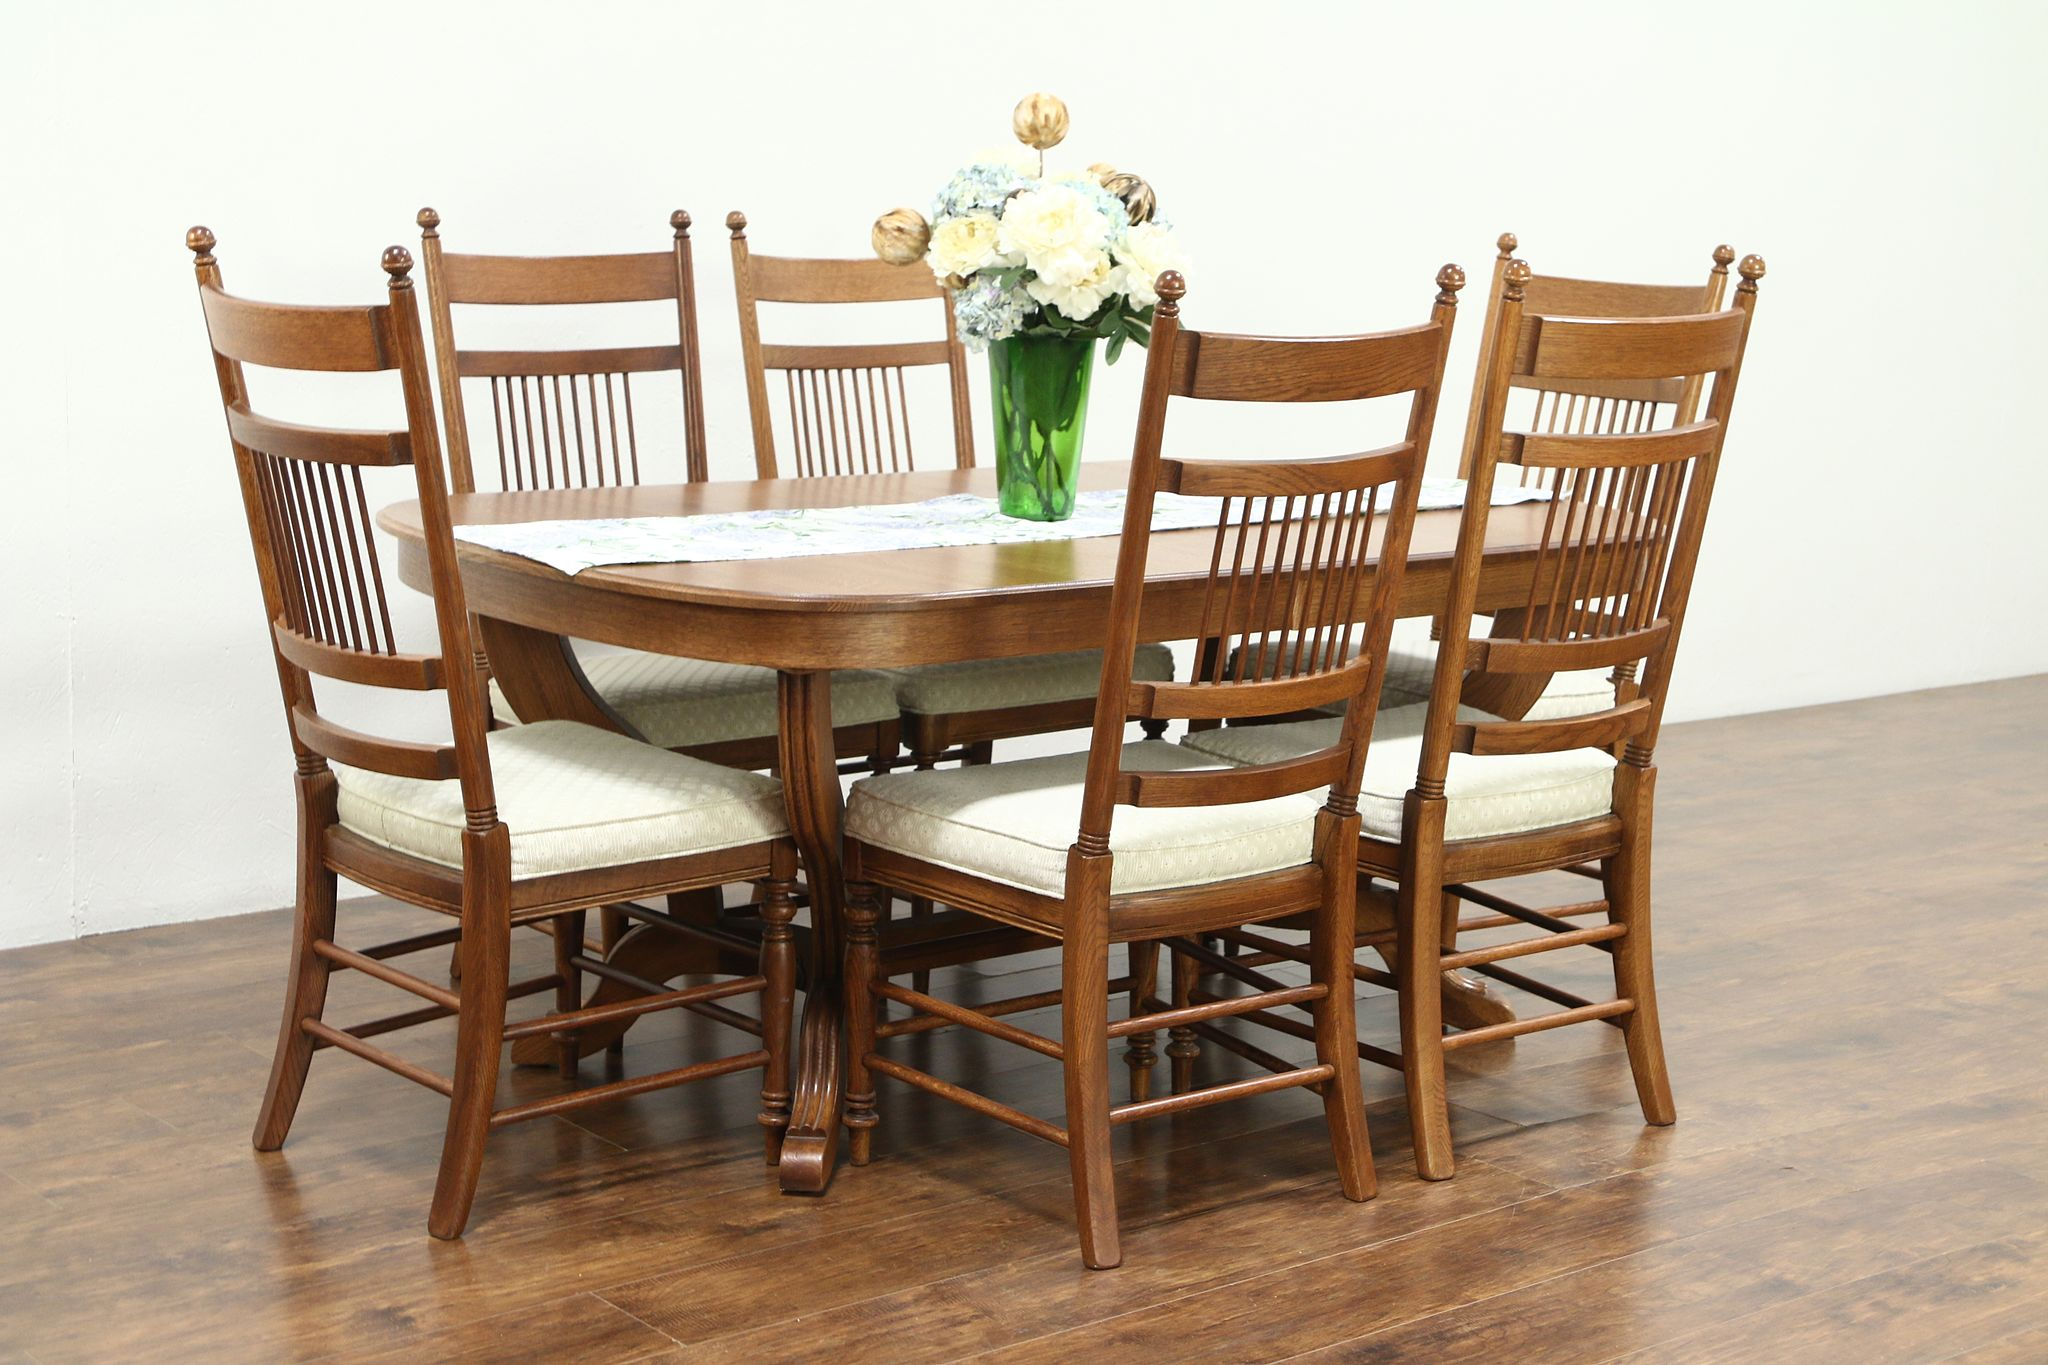 6 chair dining set folding online pakistan sold oak vintage table 4 leaves chairs signed richardson bros harp gallery